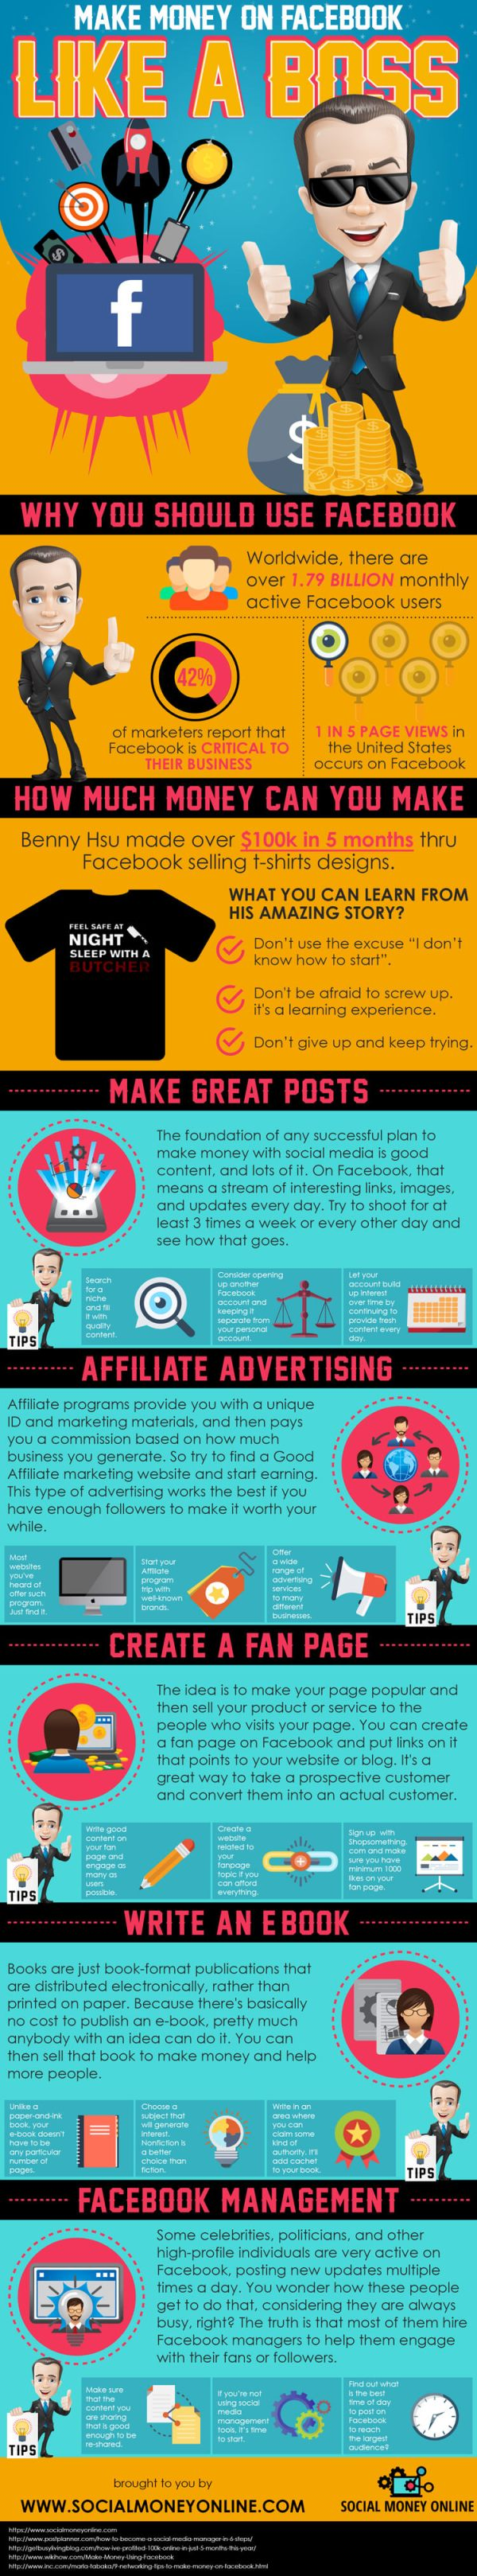 Making_money_on_Facebook_infographic